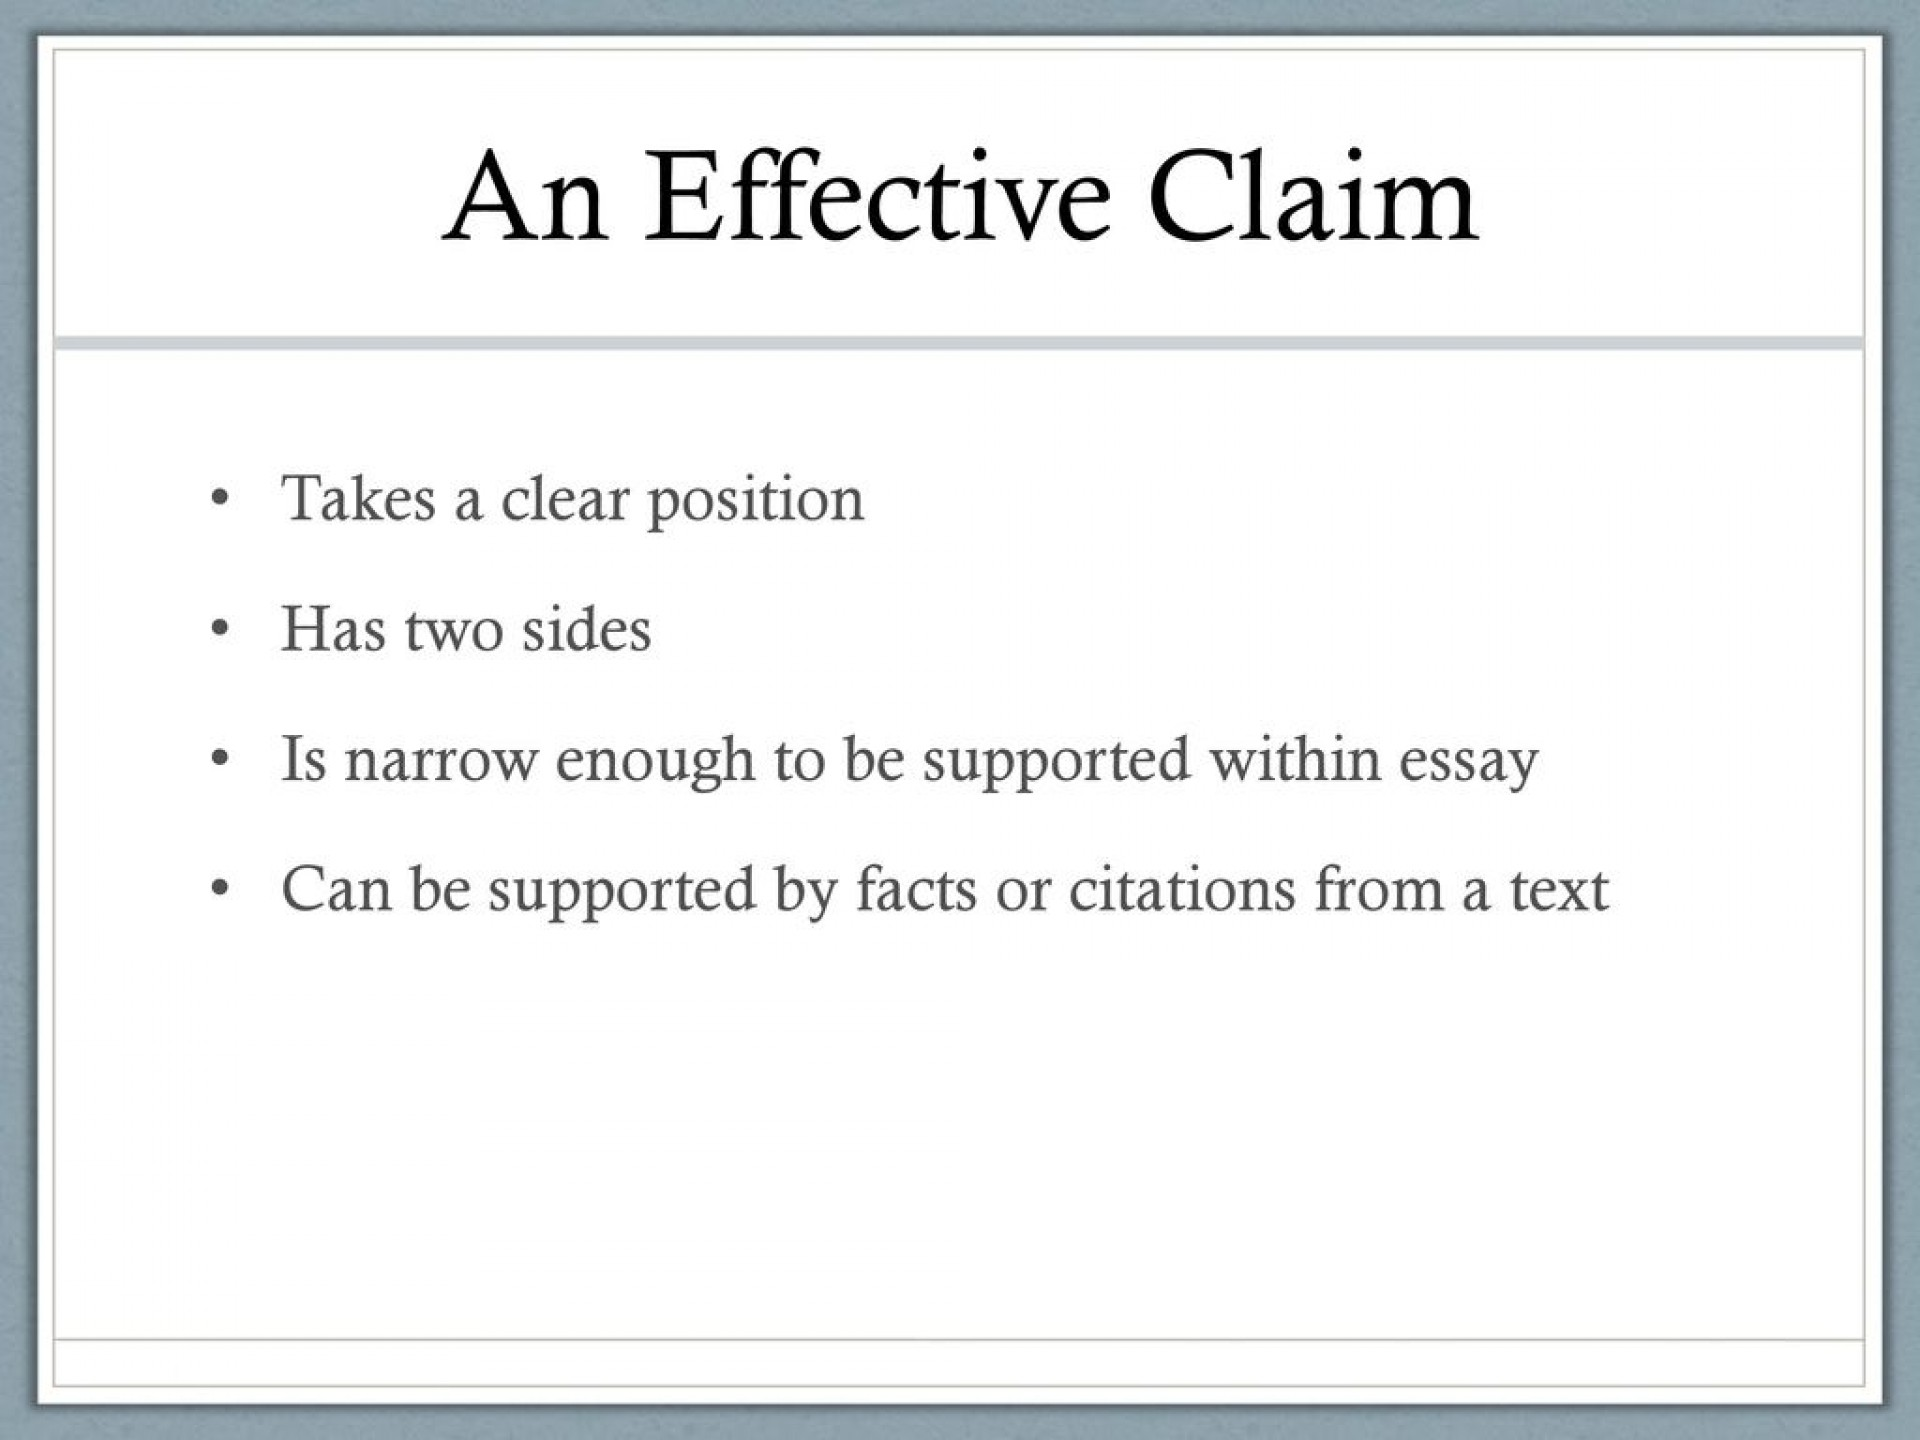 009 Aneffectiveclaimtakesaclearpositionhastwosides An Effective Claim For Argumentative Essay Is Wondrous Which Statement Example Of Brainly Quizlet 1920